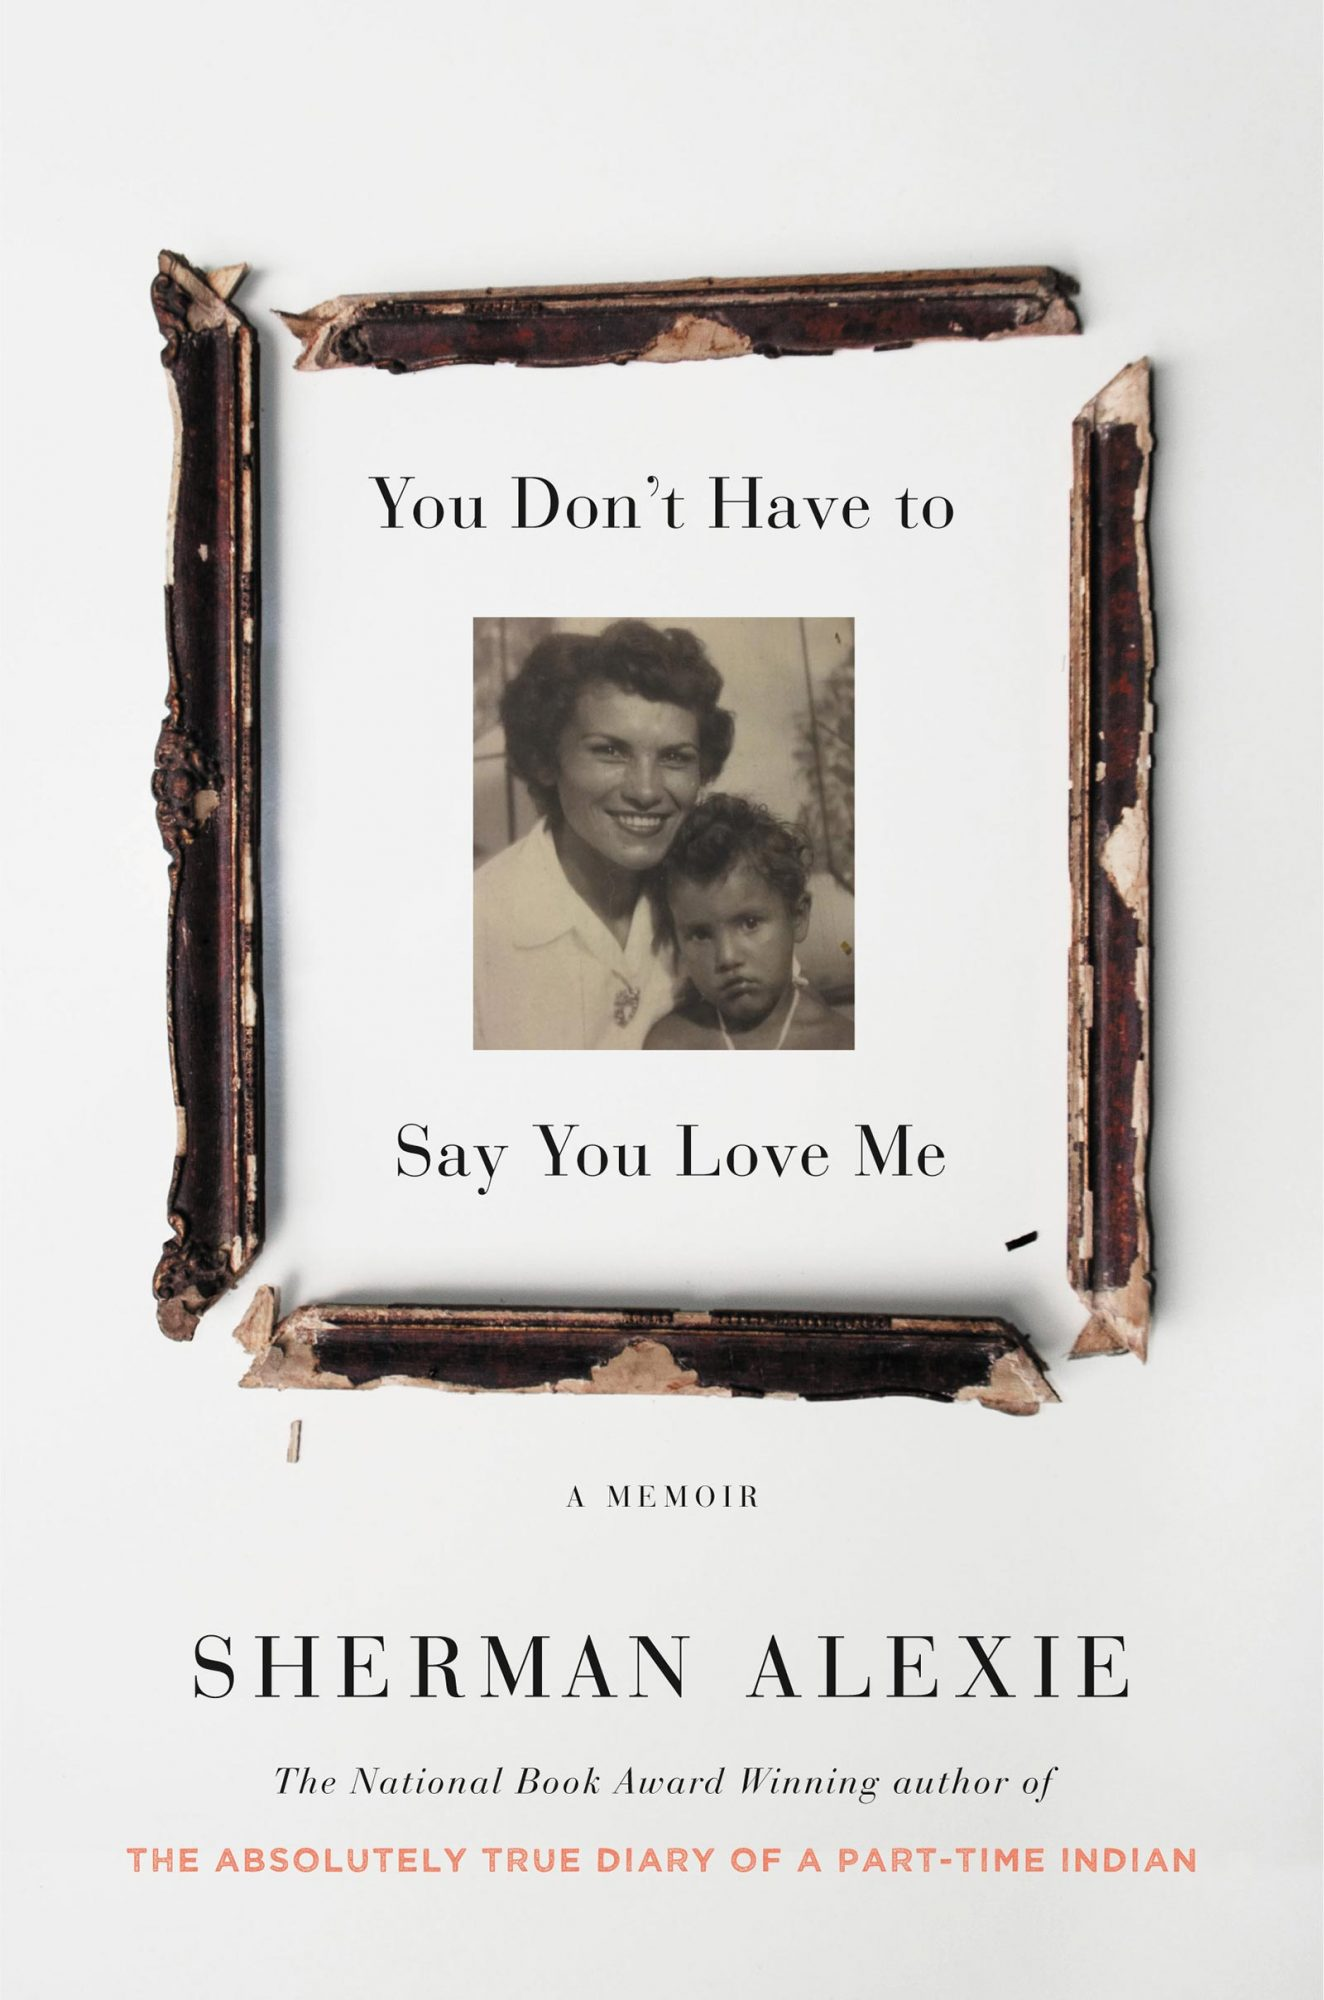 You Donít Have to Say You Love Me (6/13/17)